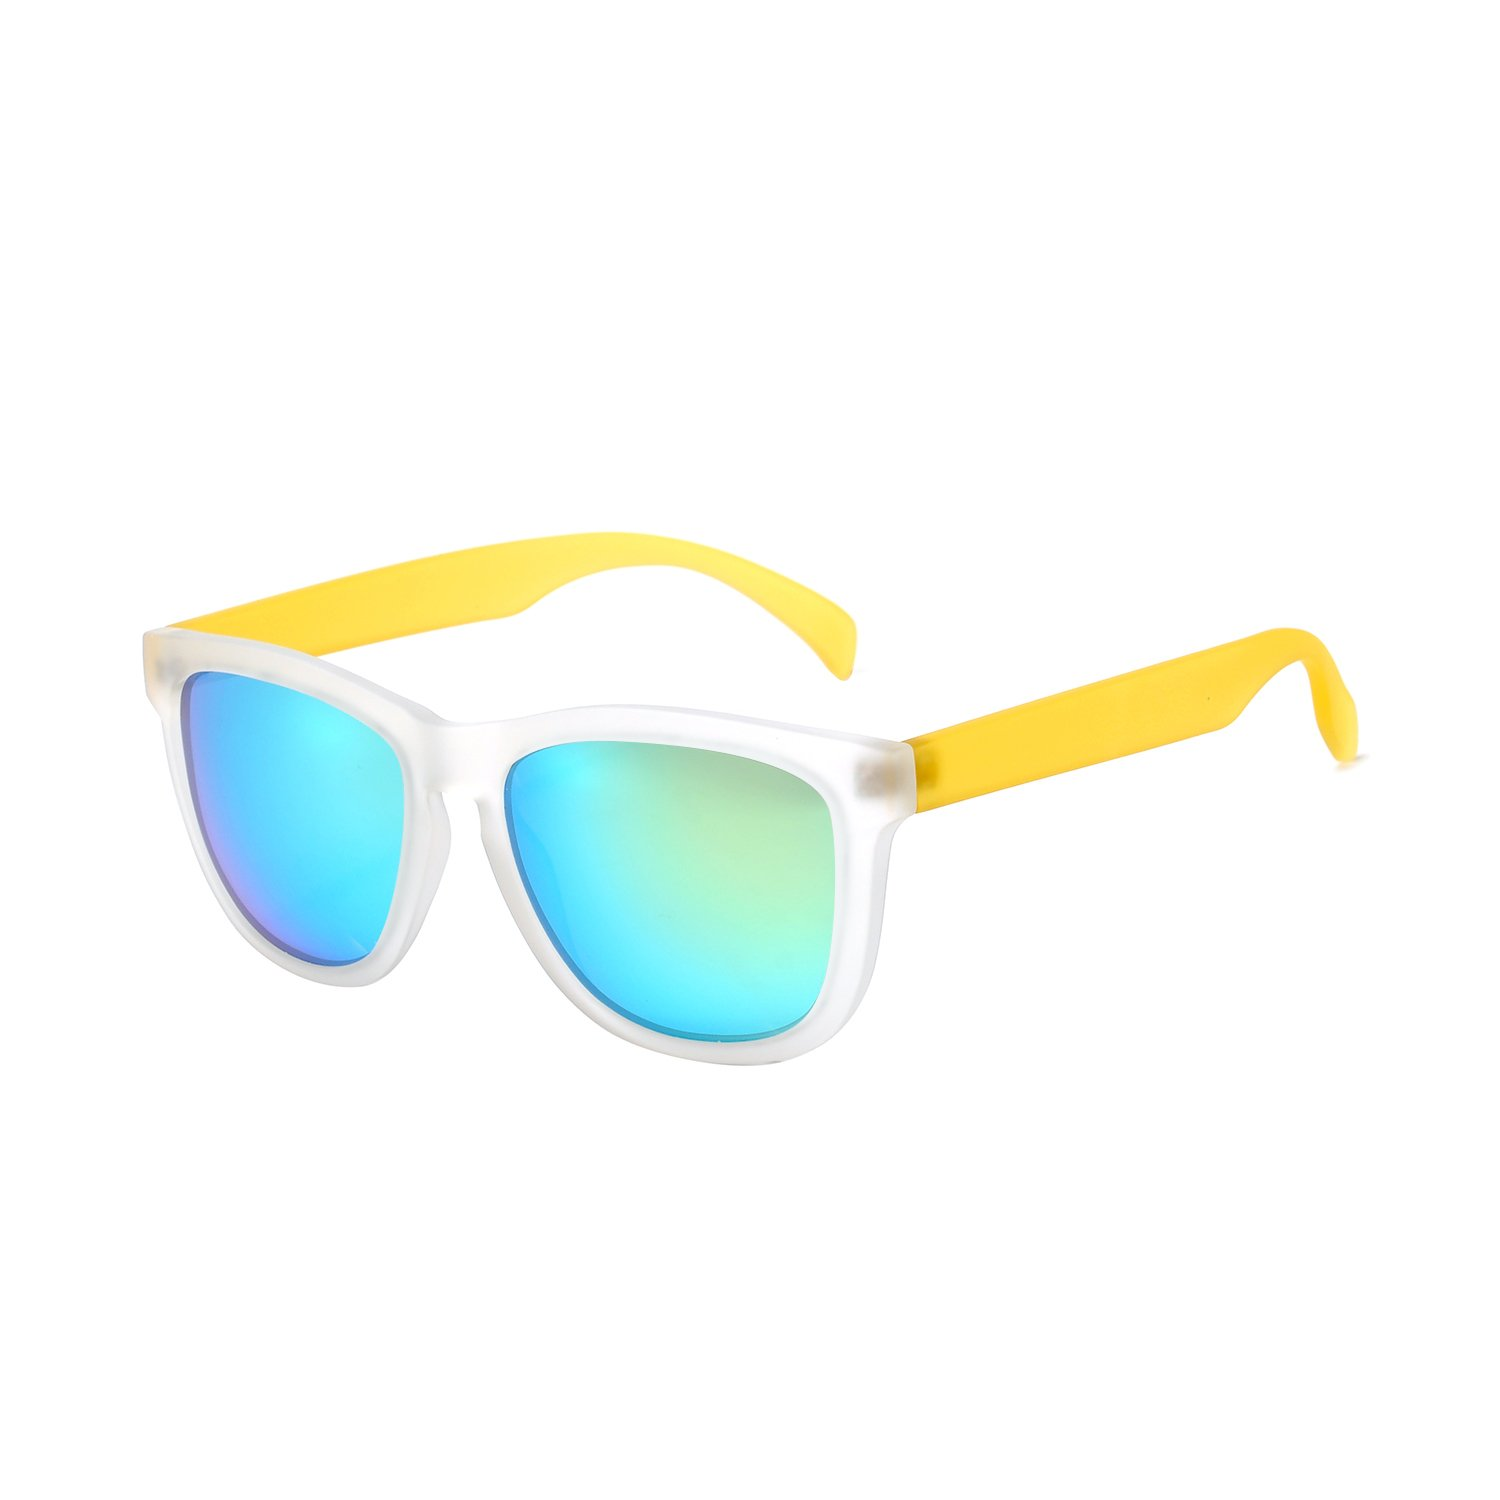 KENTKING Polarized Wayfarer Sunglasses,Unisex Clear Matt Frame TAC Mirrored Lens Beach Sunglasses (Clear Yellow/Apple Green)